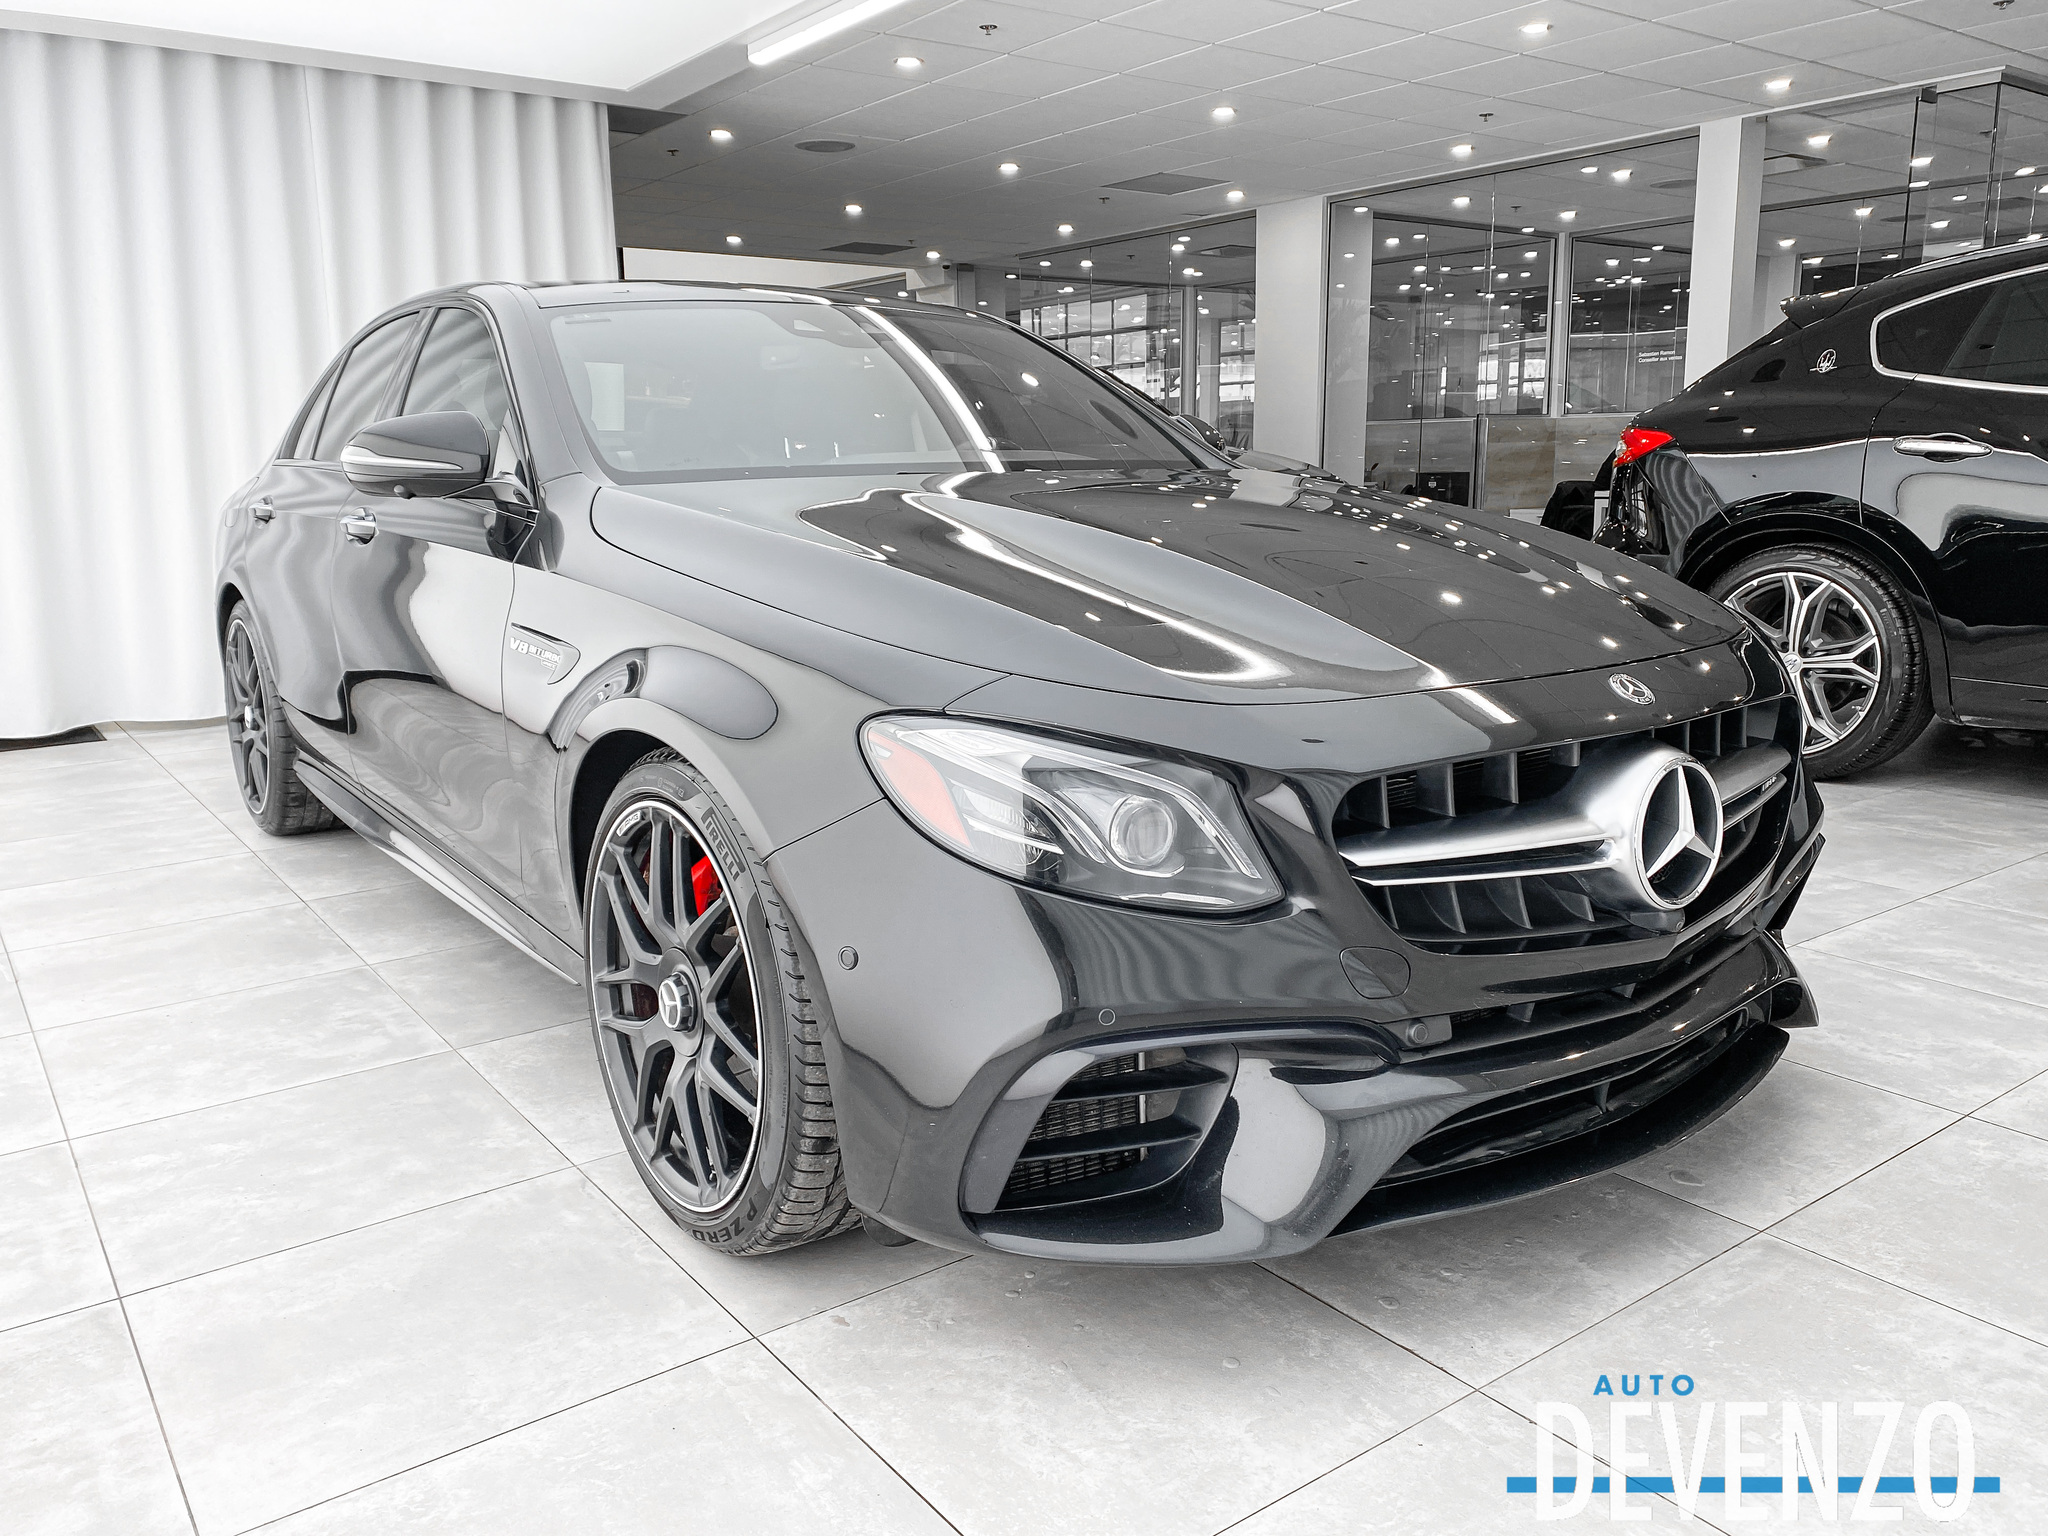 2018 Mercedes-Benz E-Class AMG E63 S 4MATIC NIGHT / CARBON FIBER PACK complet